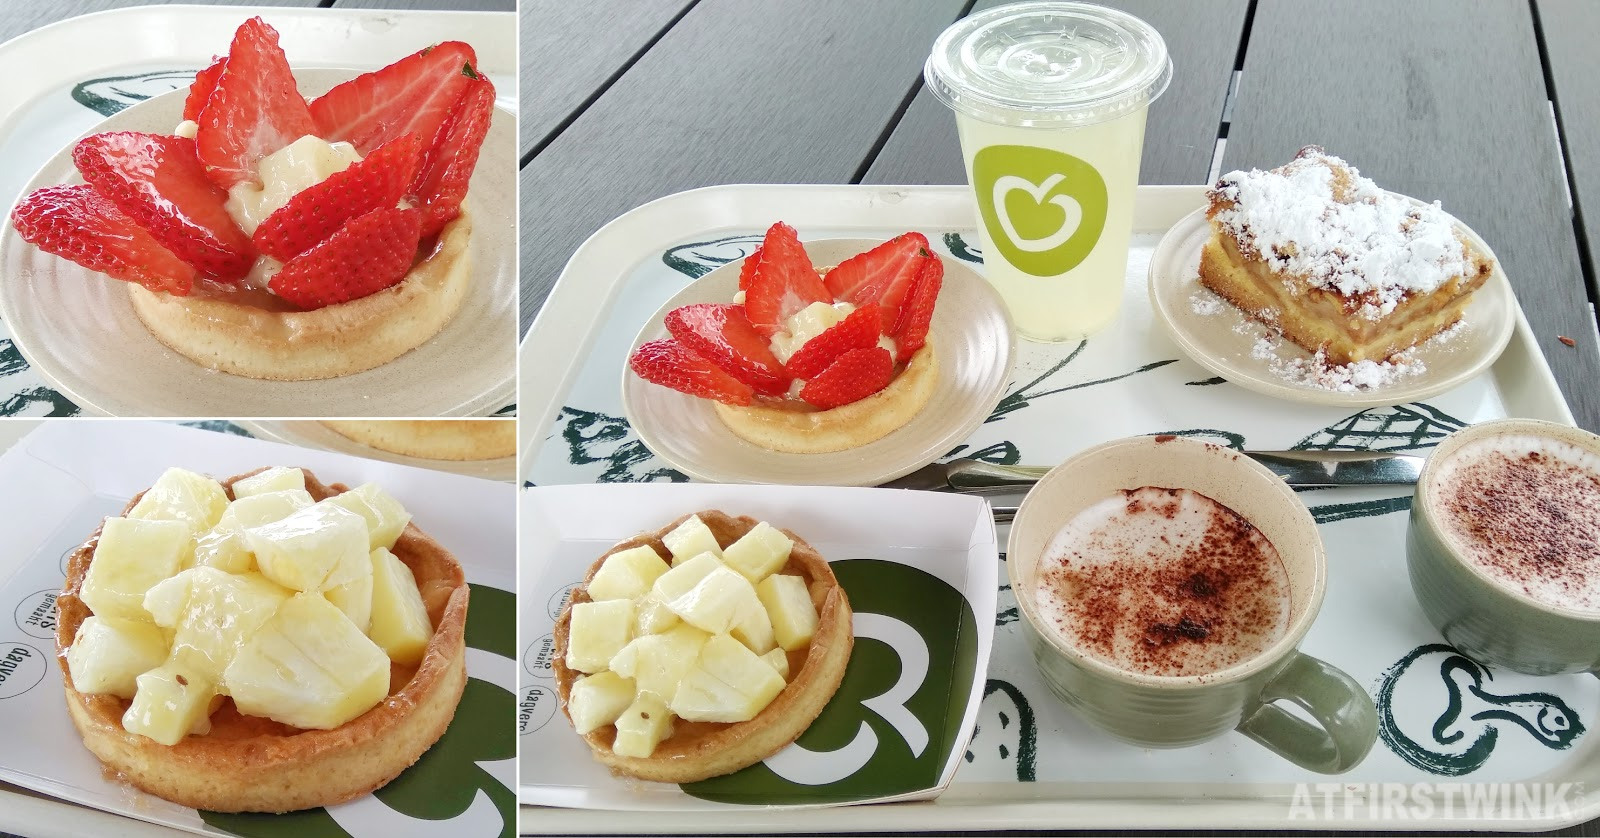 La Place Rotterdam homemade lemonade cappuccino pineapple strawberry tart apple crumble cake